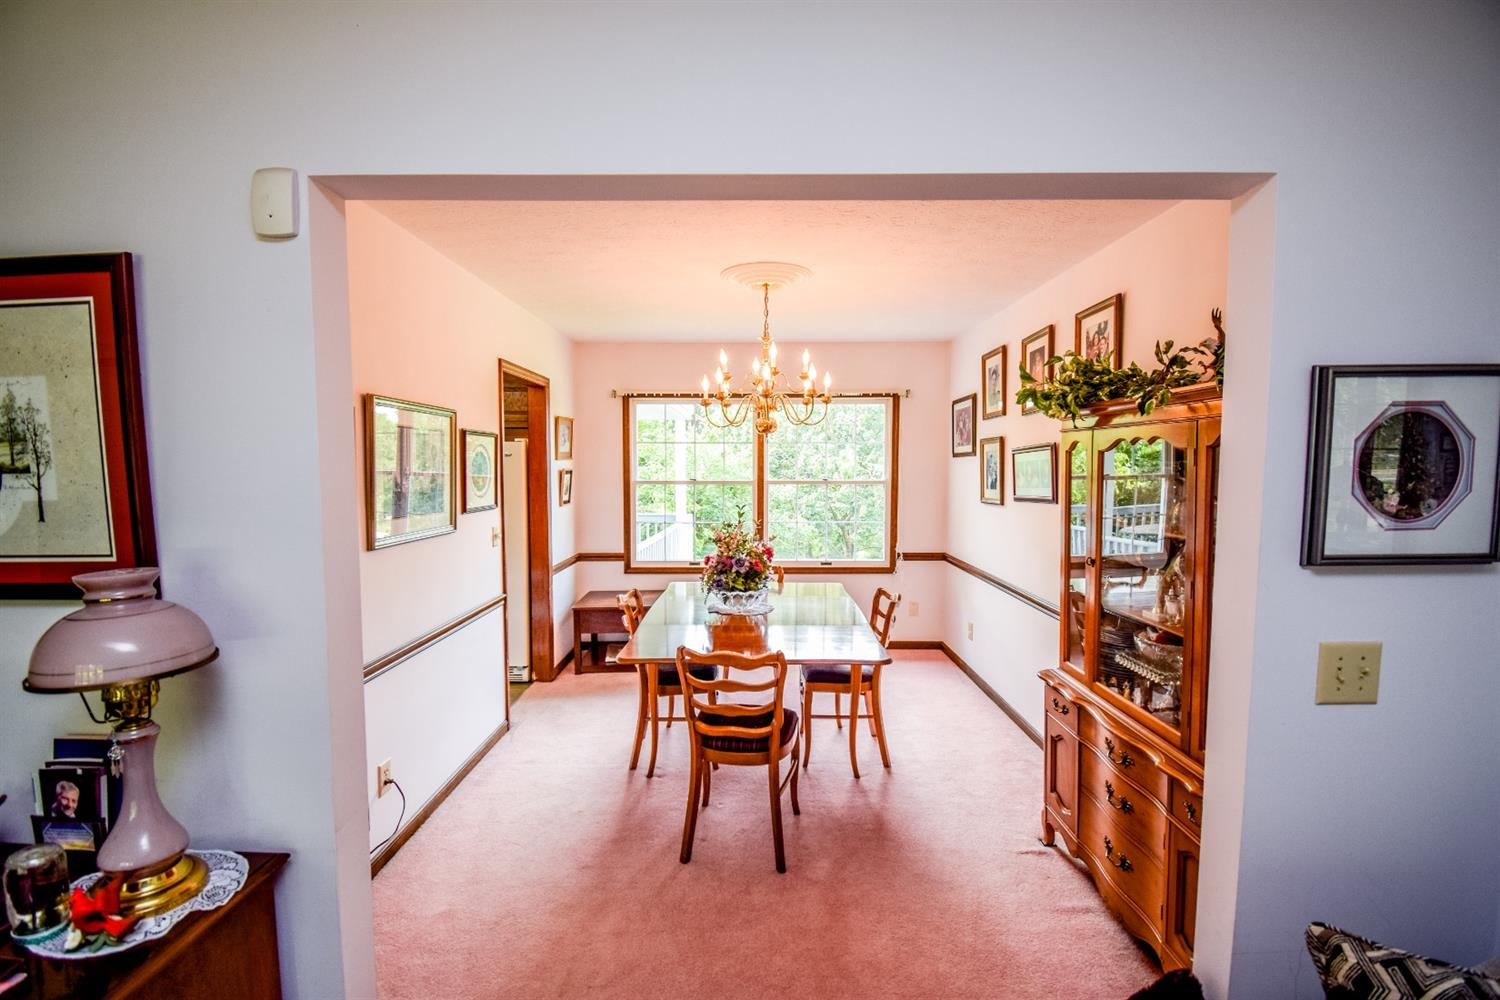 Formal dining room off of kitchen